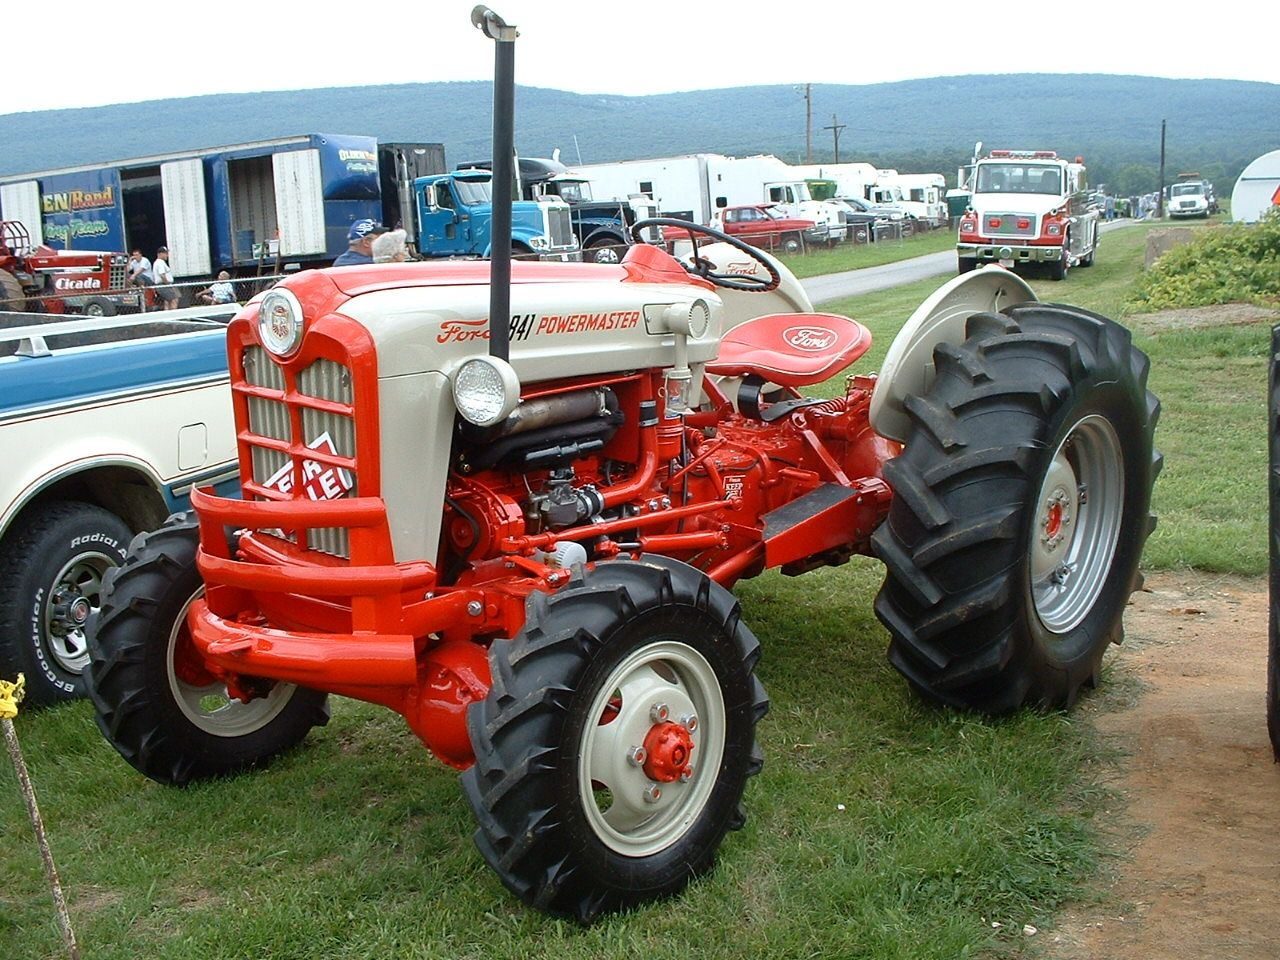 Ford 8N, 9N 2N Tractors - Collecting, Restoring and Antique ford tractors pictures